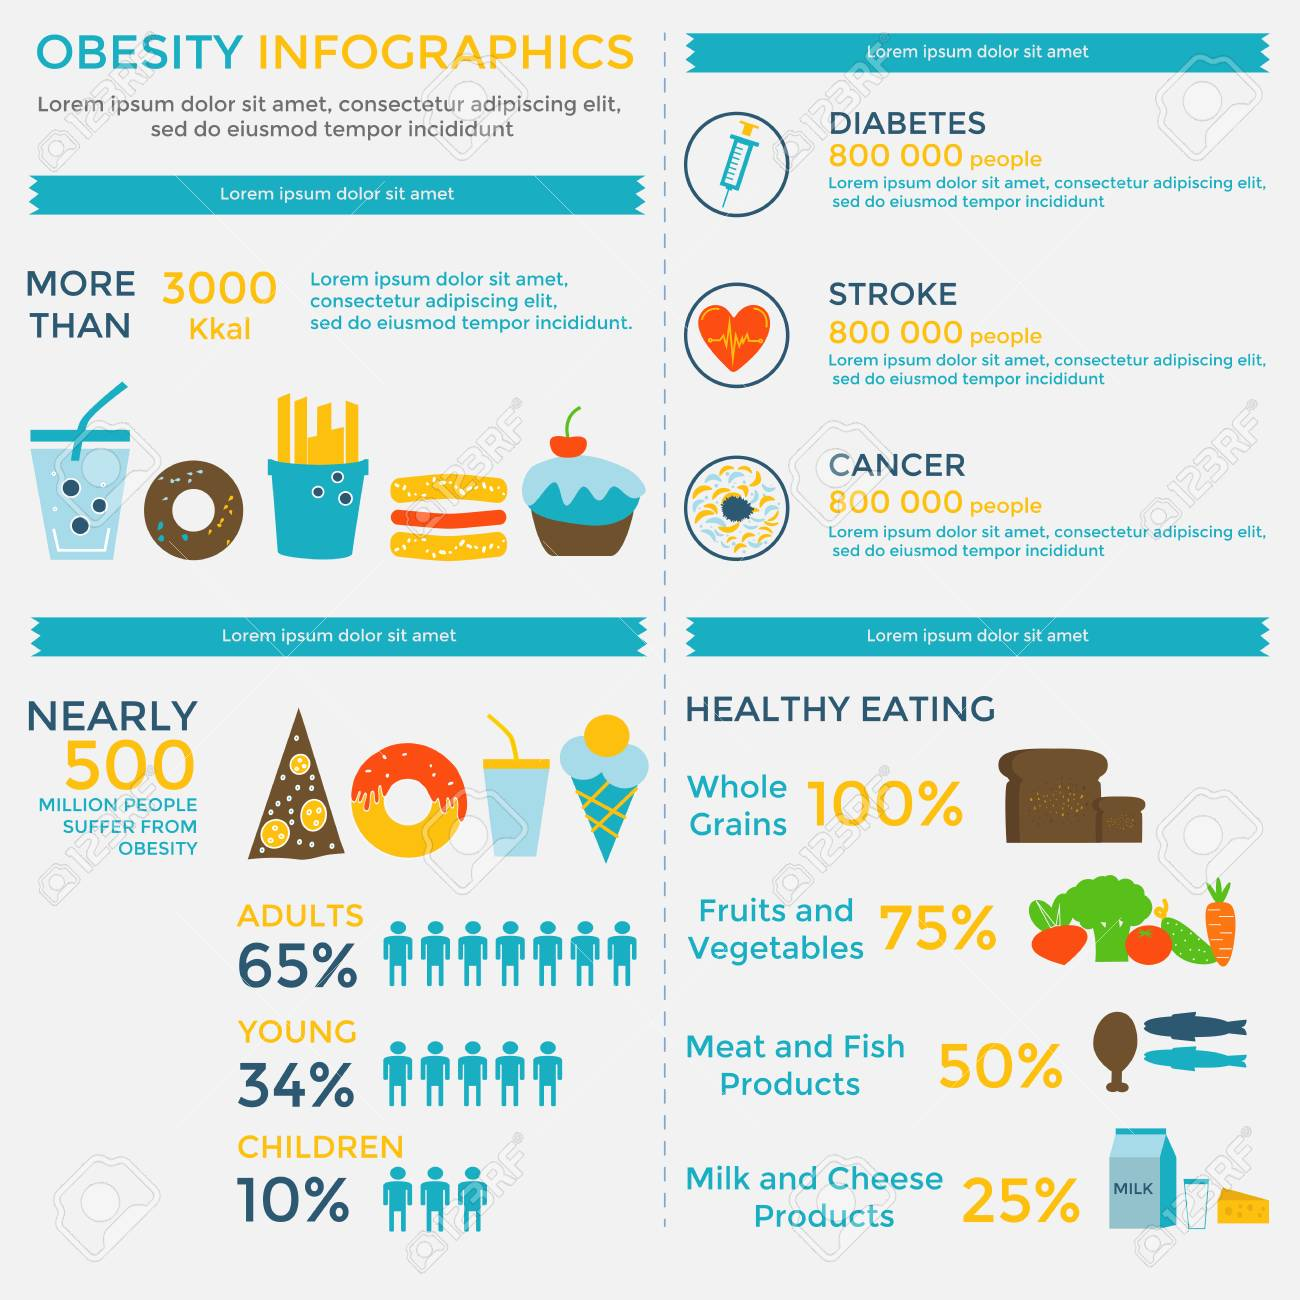 Obesity infographic template - fast food, sedentary lifestyle,diet,